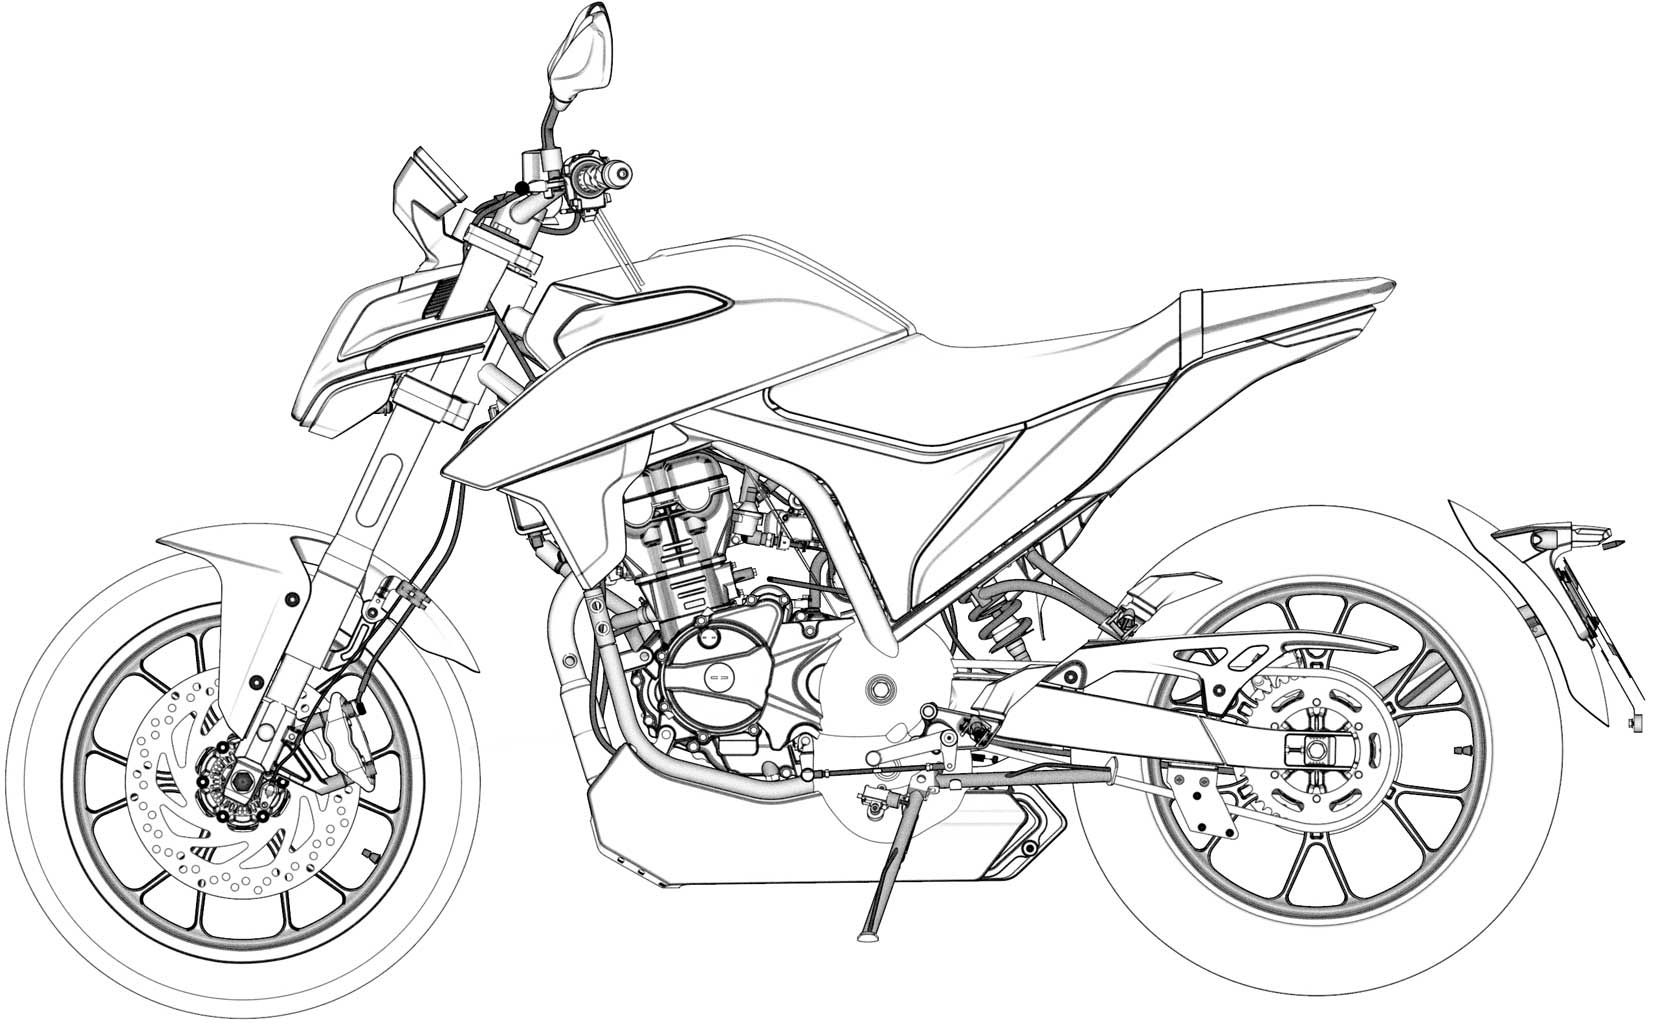 The new patents show a production version using much of the same styling, including the unique wraparound headlight and tank design.